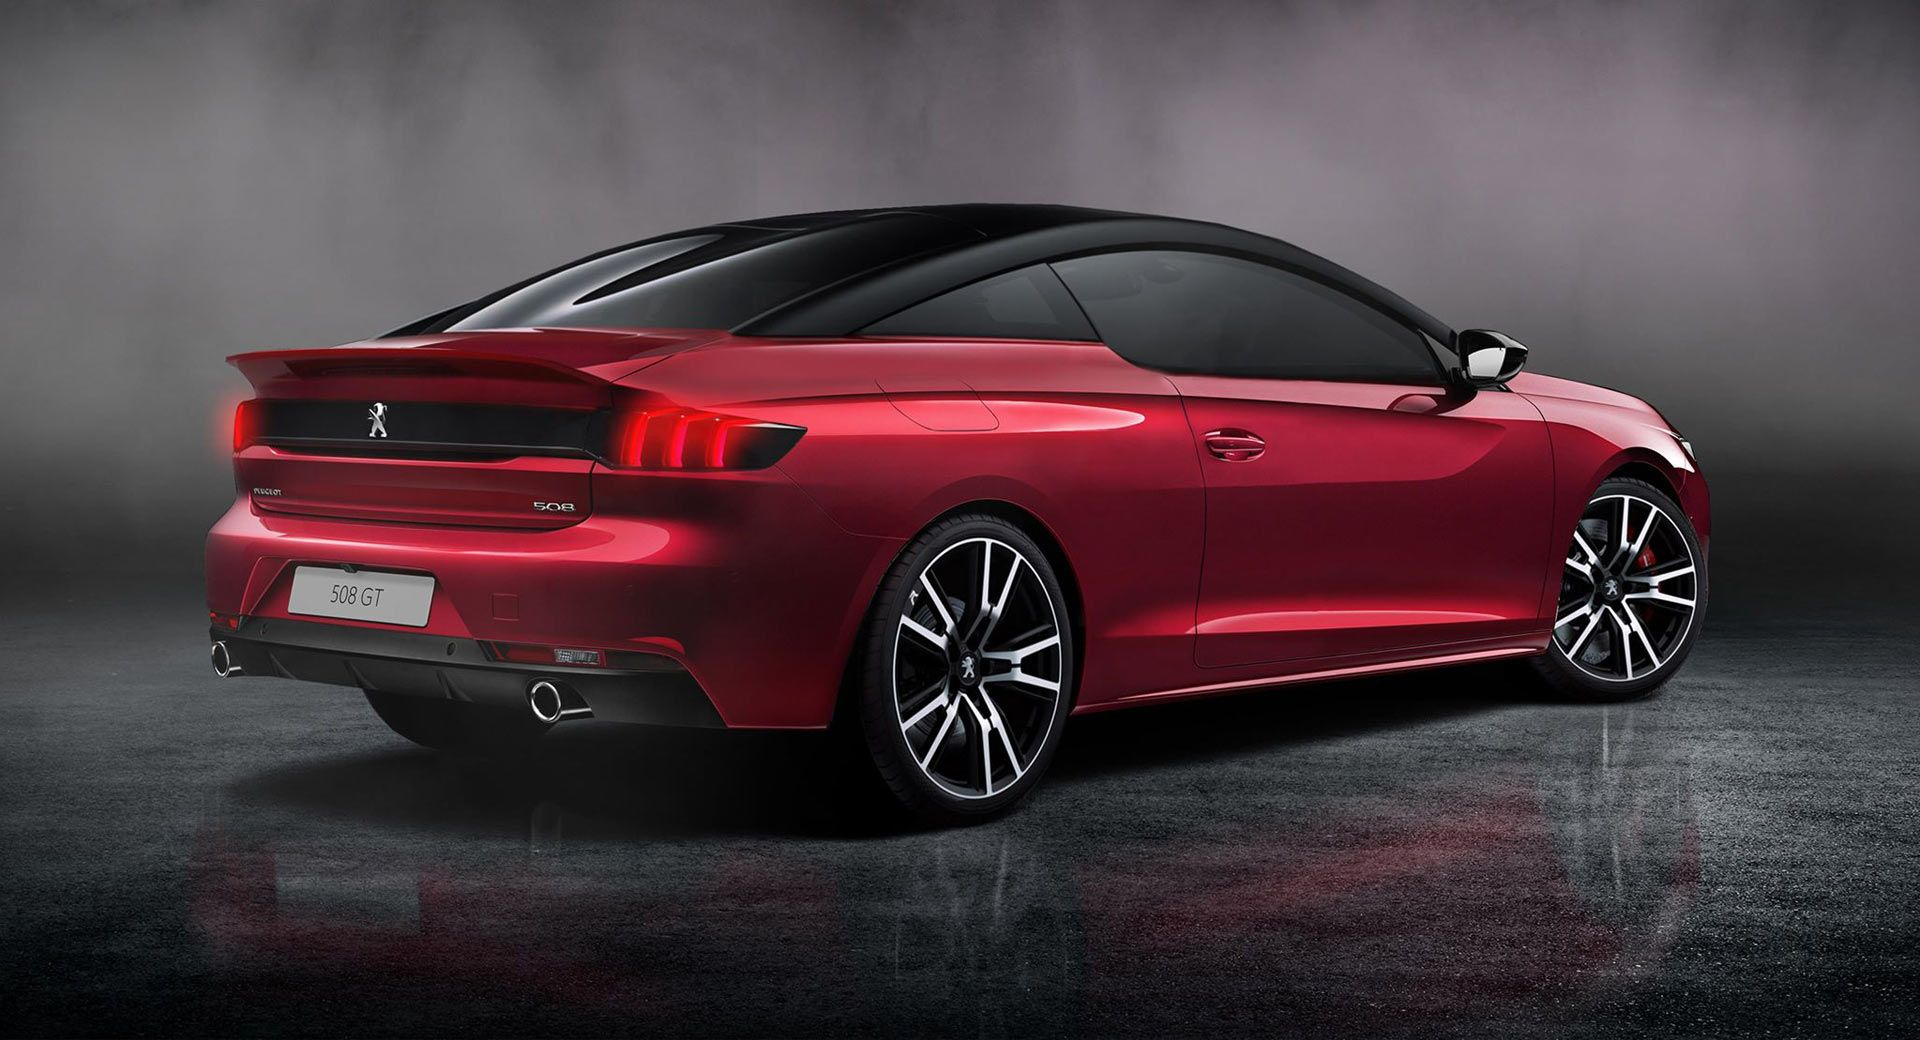 New Peugeot 508 Looks Even More Enticing As A Coupe Peugeot